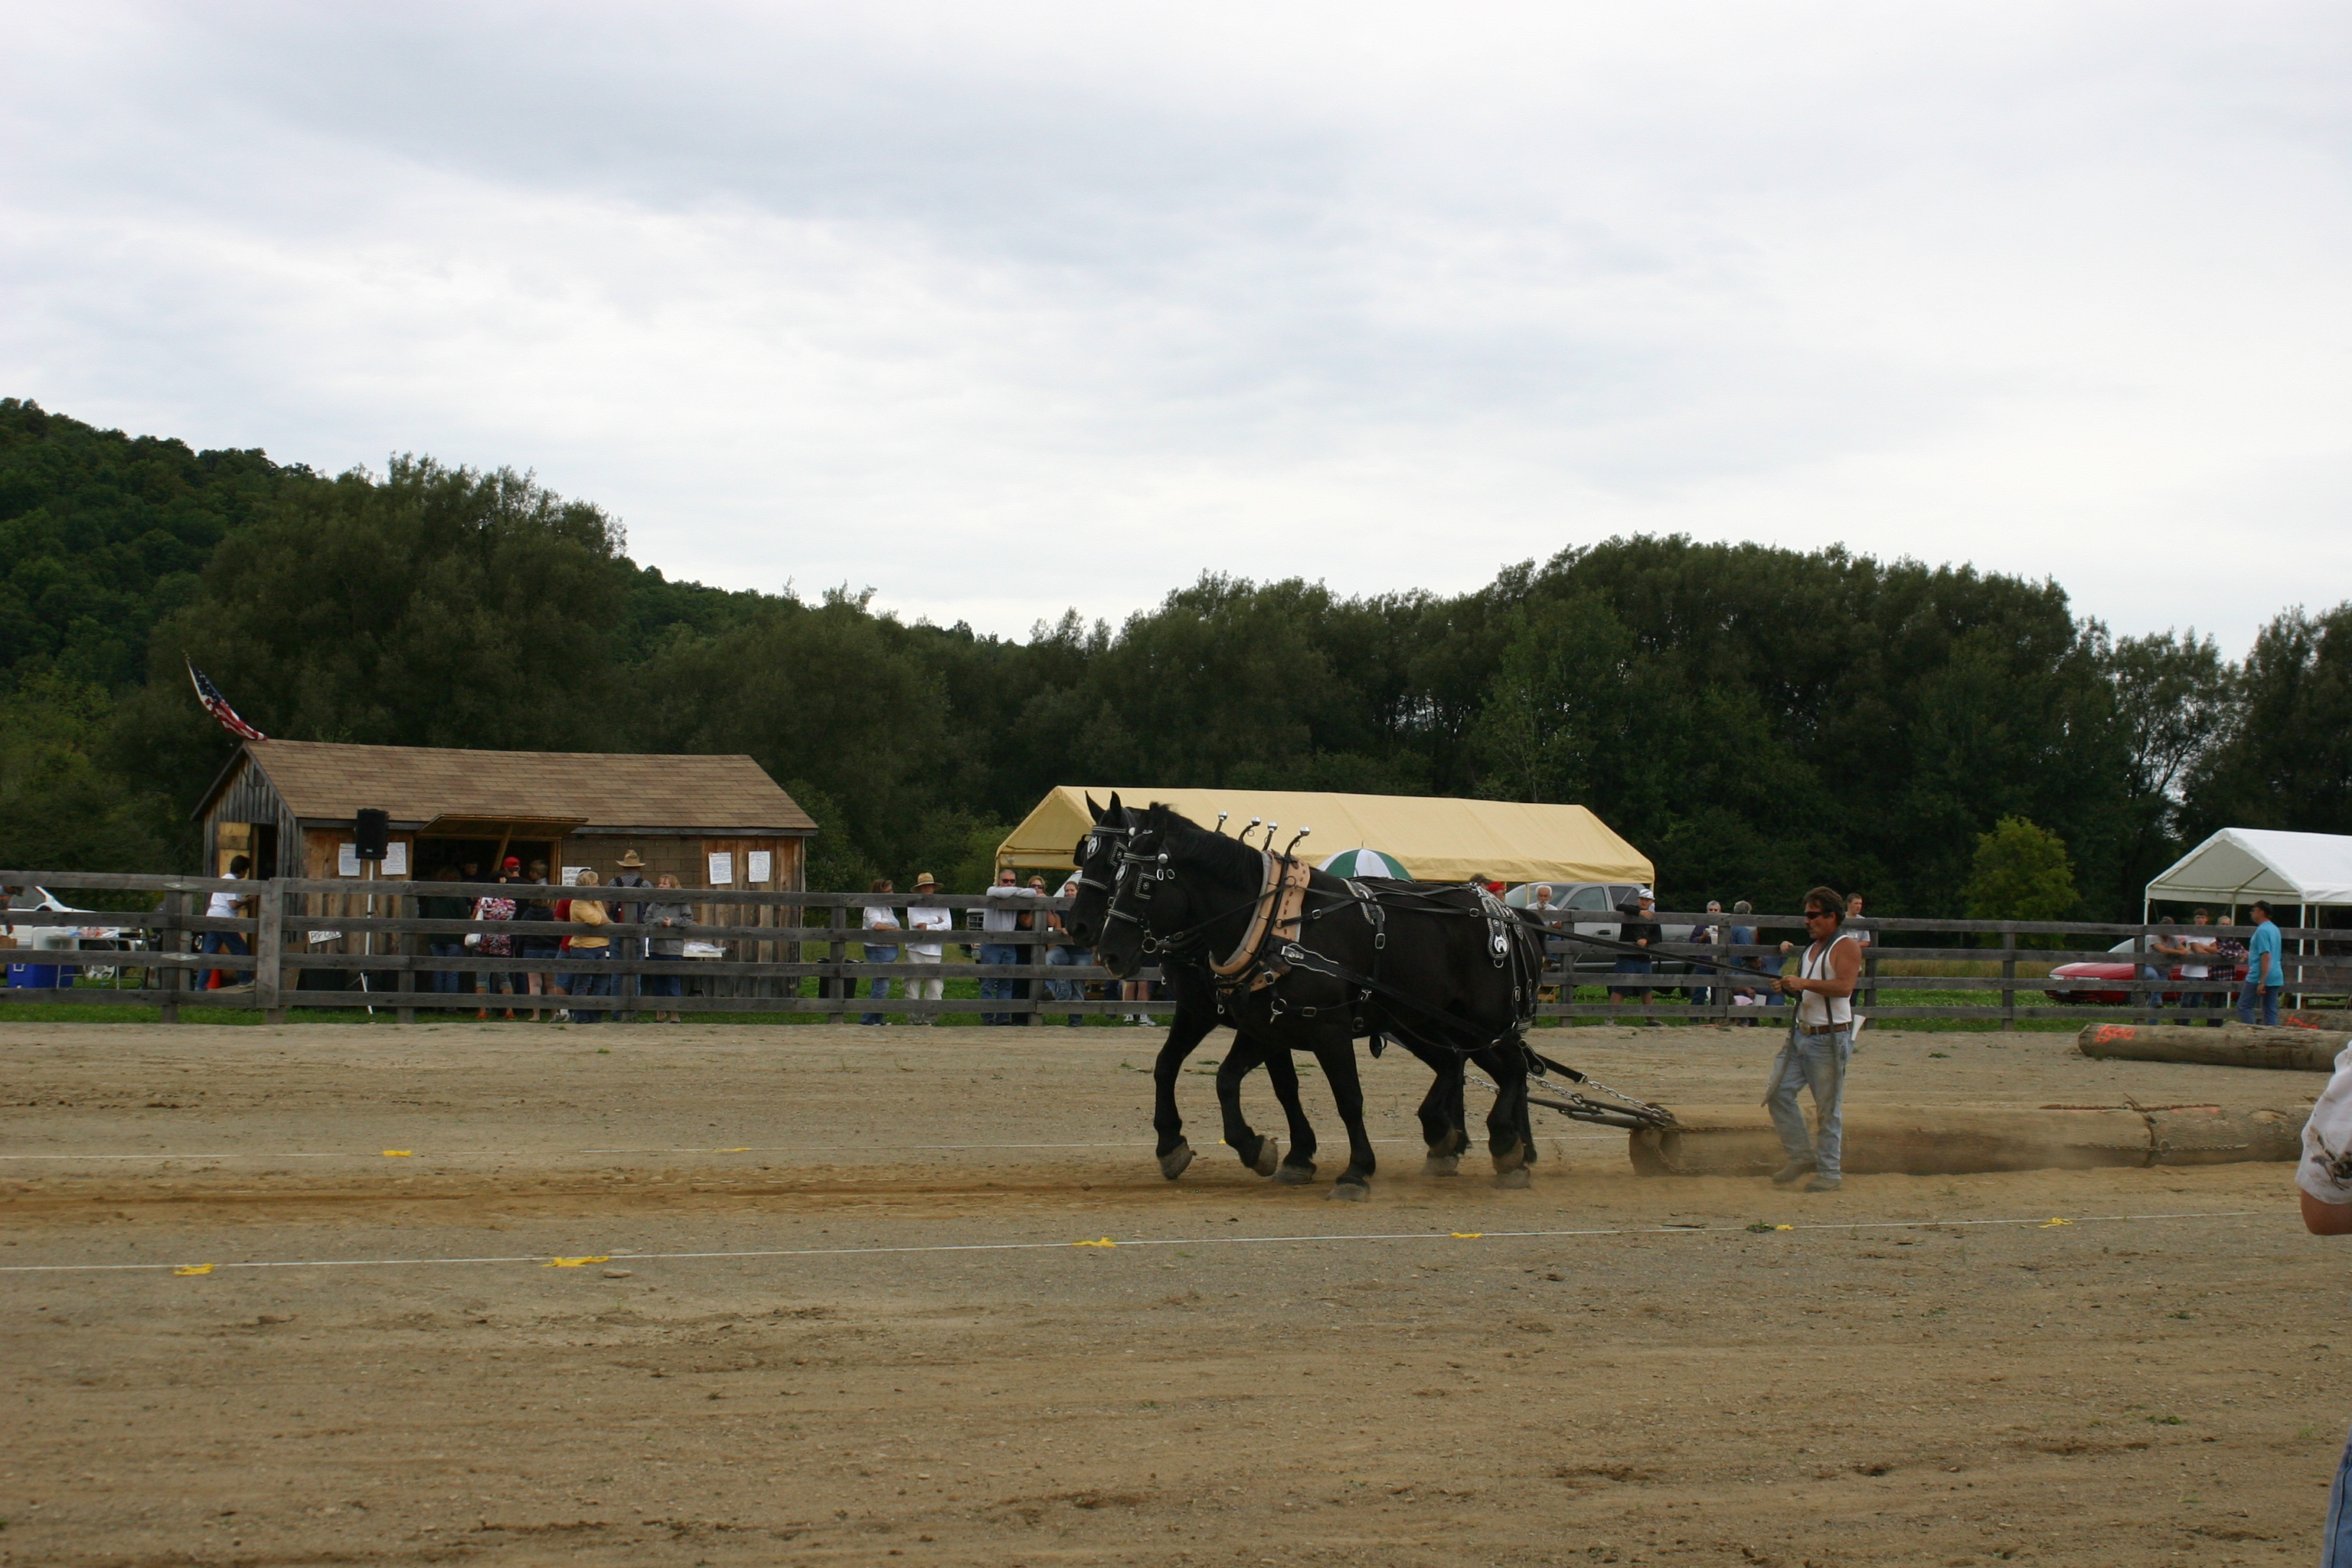 Creekside Roundup S 2012 Horse Pull Enchanted Mountains Of Cattaraugus County New York Naturally Yours